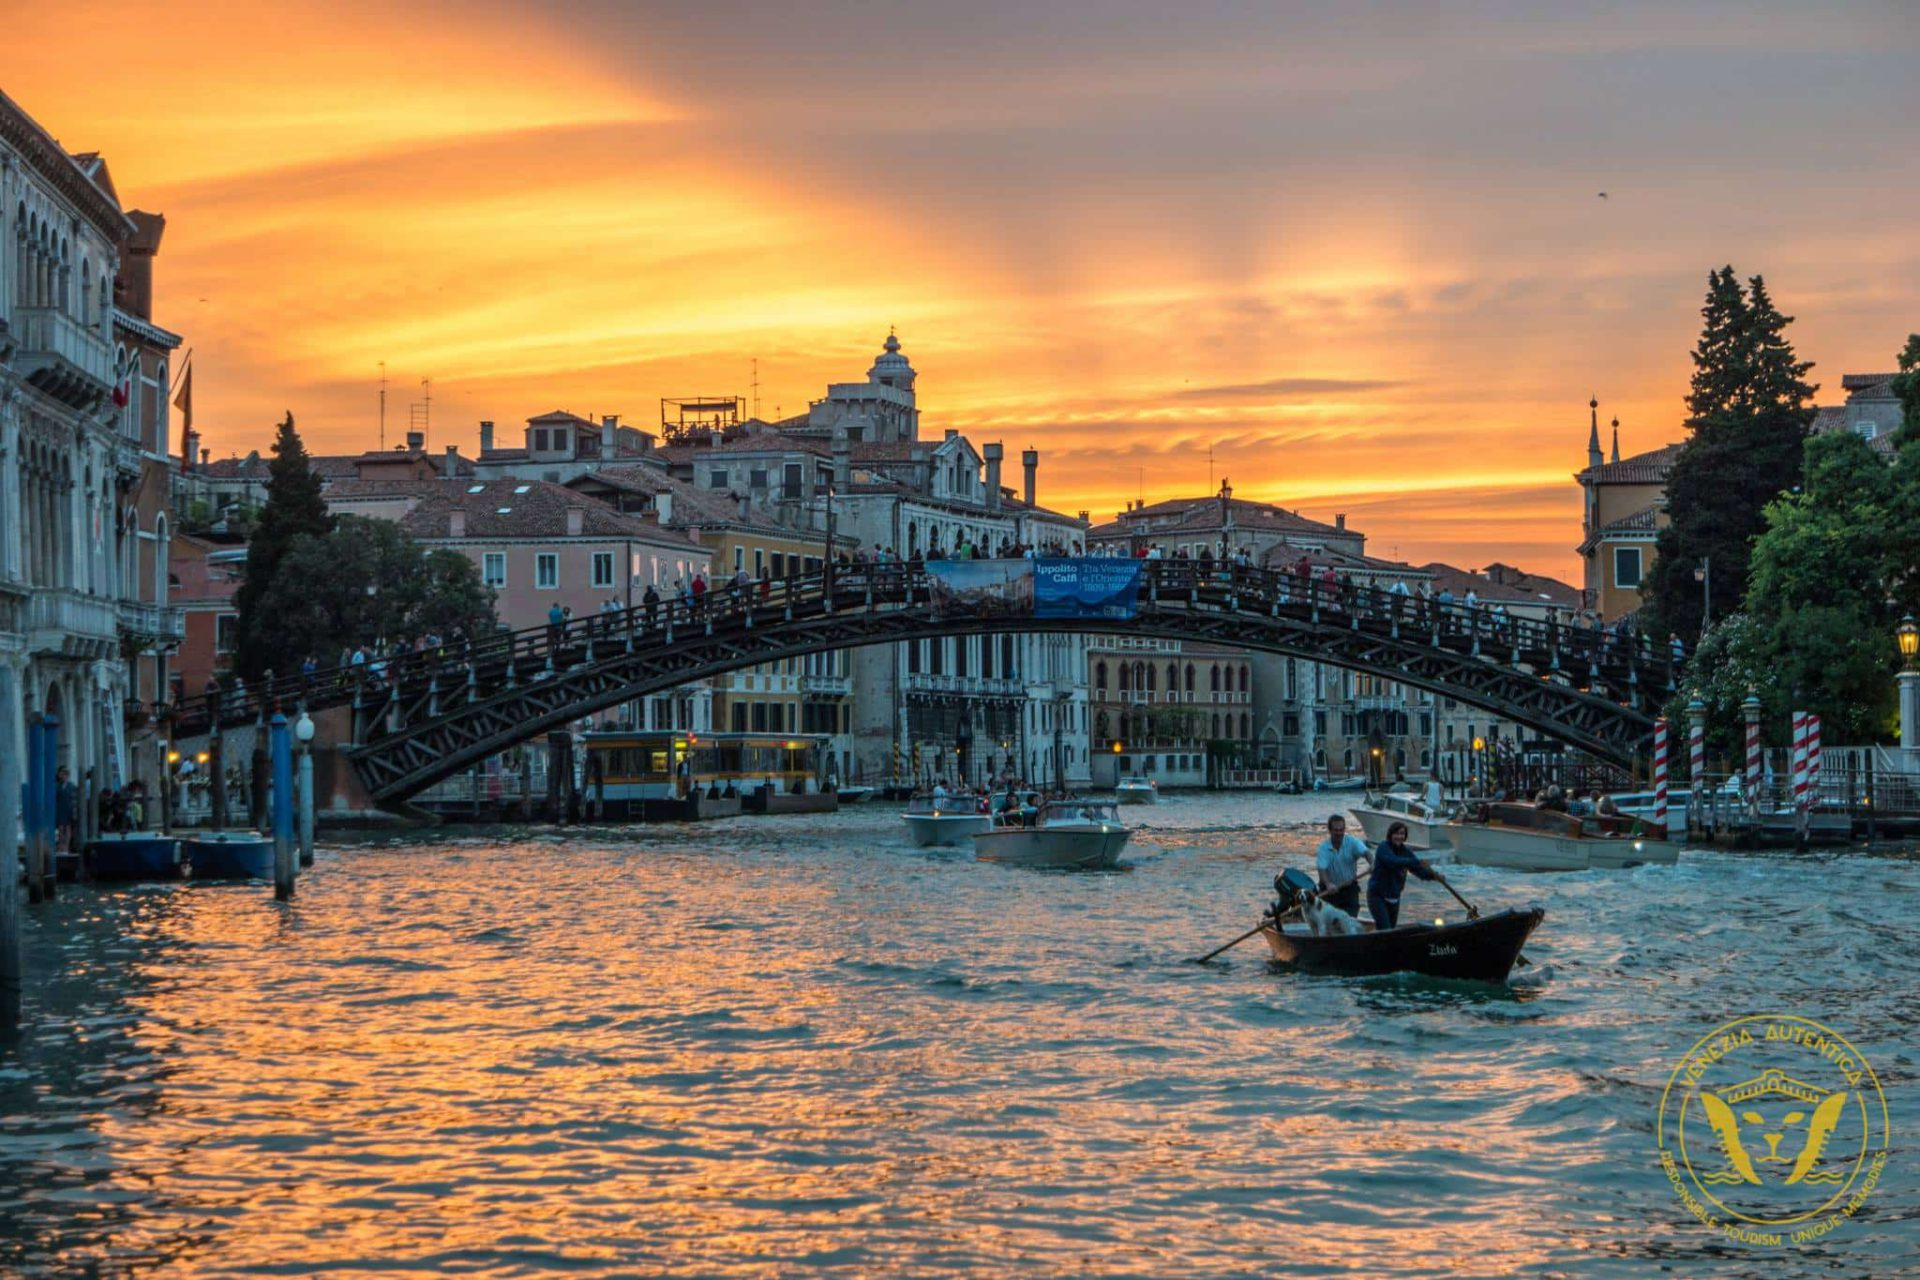 Venetians on a rowing boat on the grand canal in Venice, Italy, at sunset